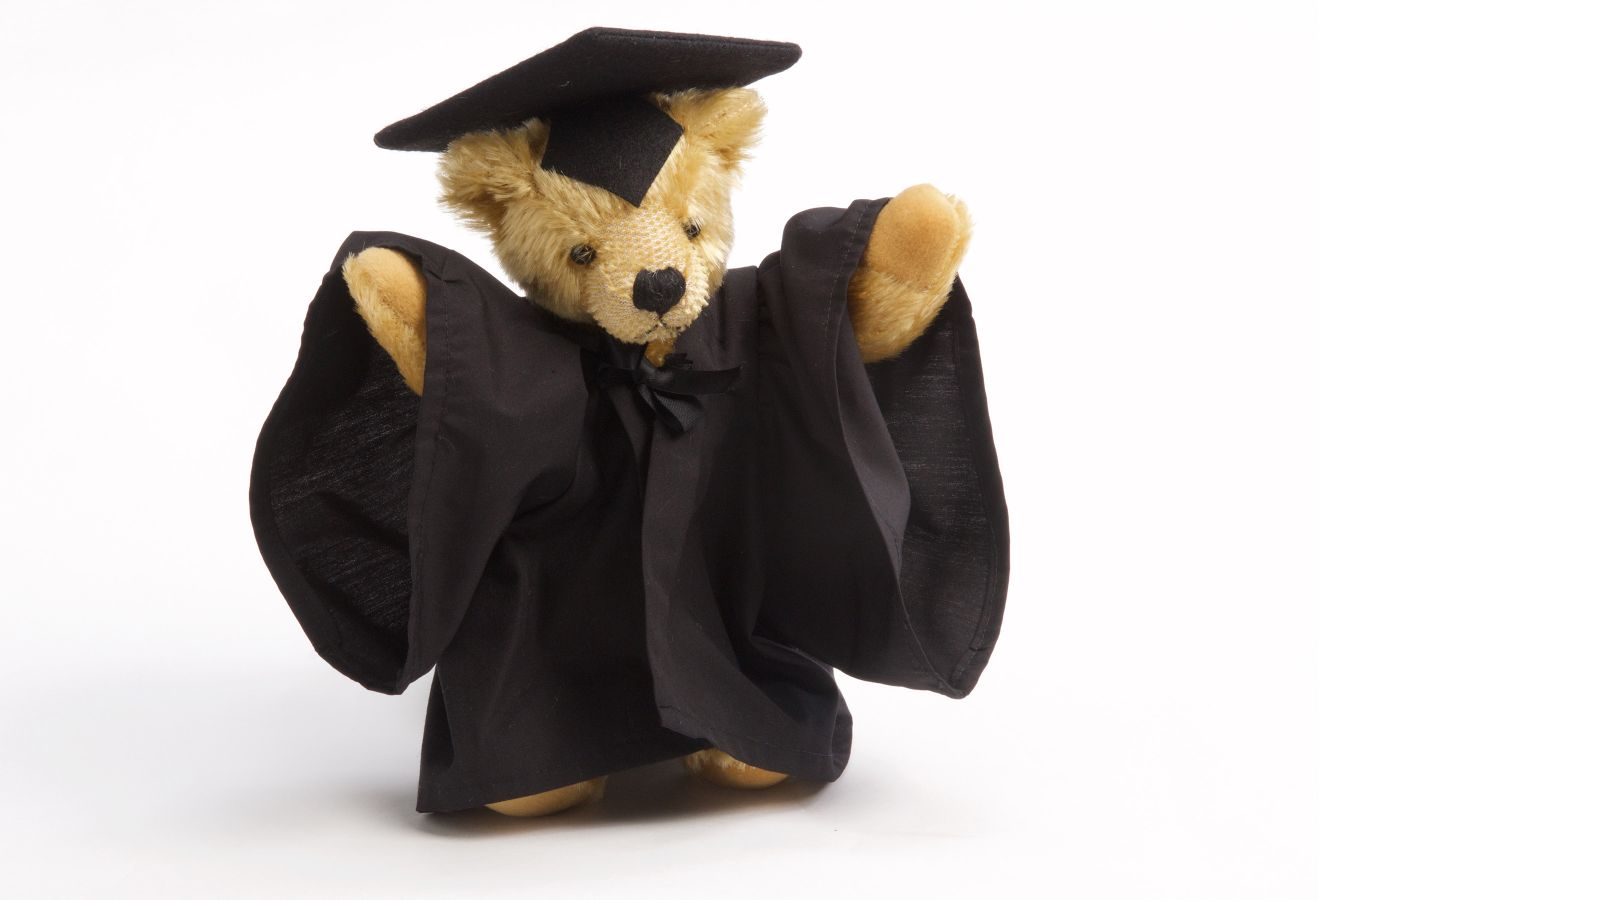 A small teddy bear wearing a graduation gown and hat.